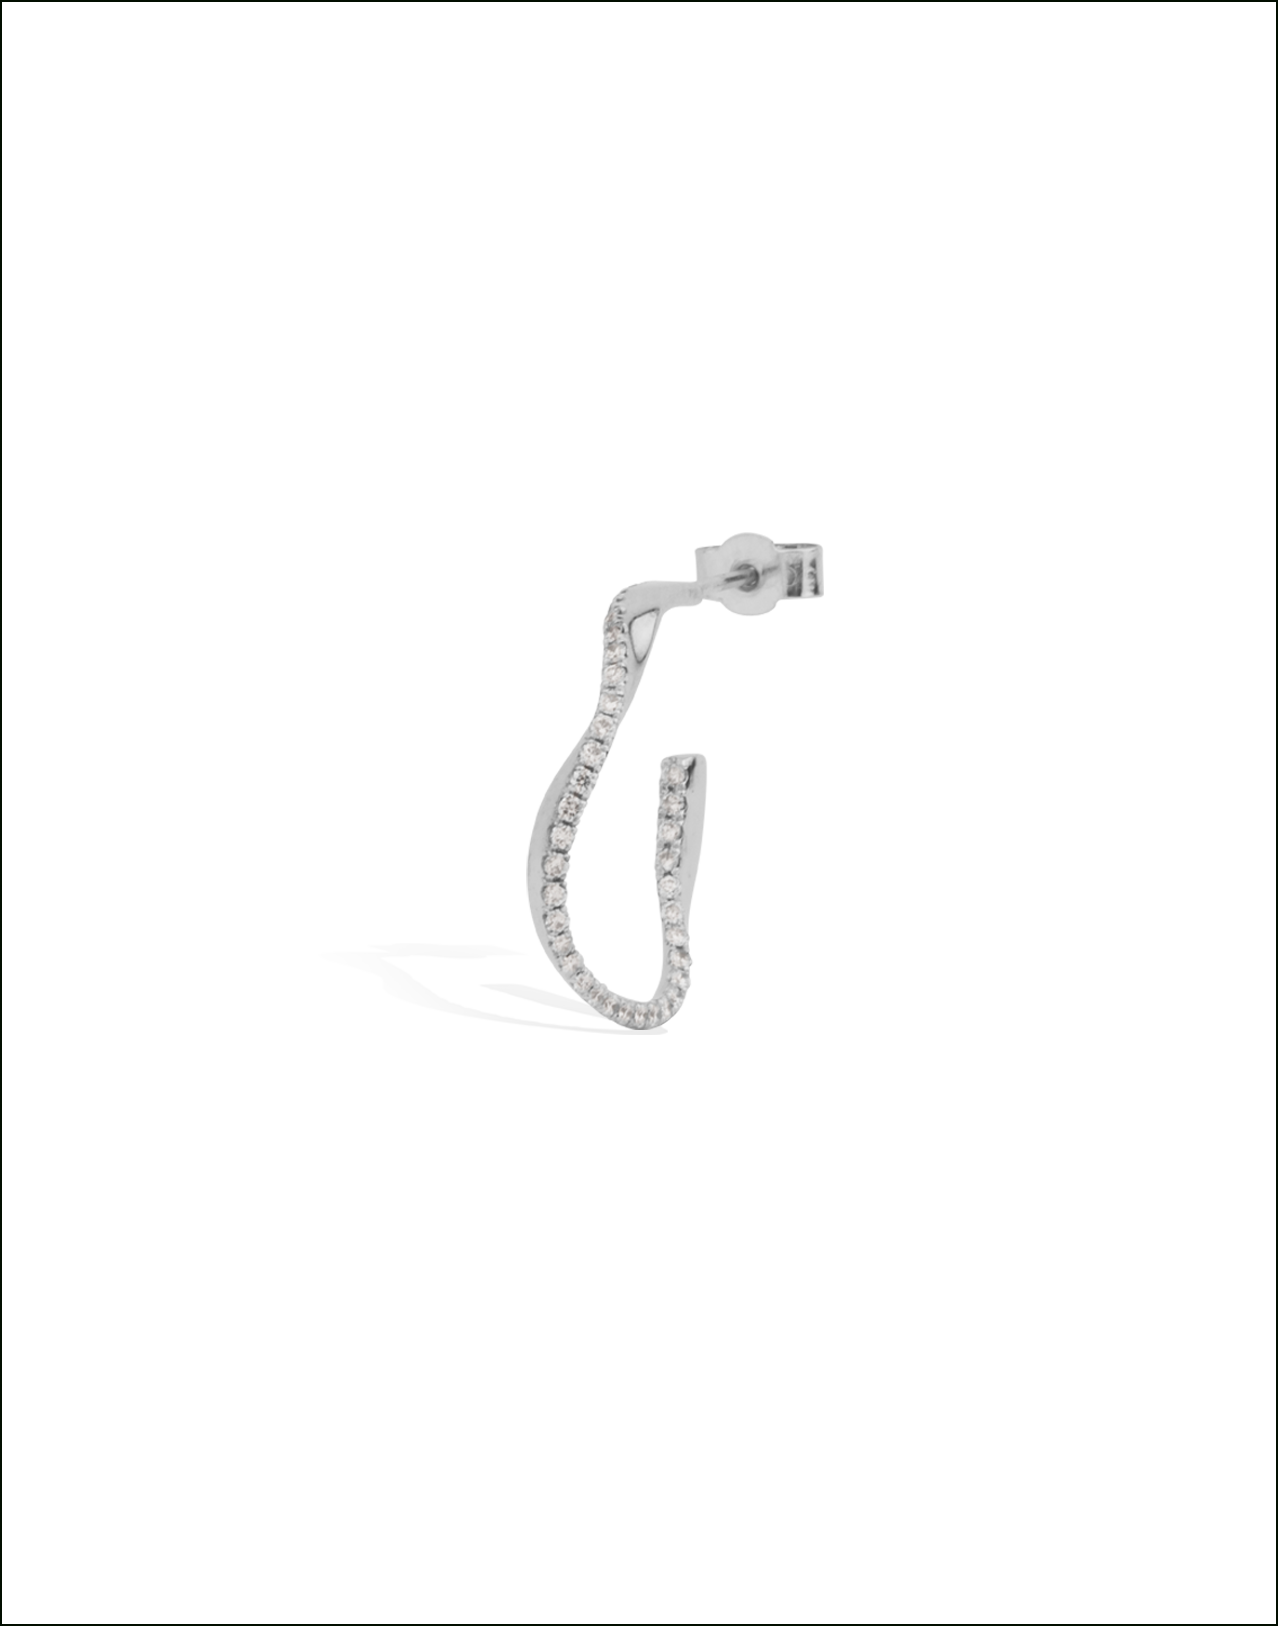 Completedworks-White-Gold-Diamond-Earring---Elegy-for-W-W---1-1.png